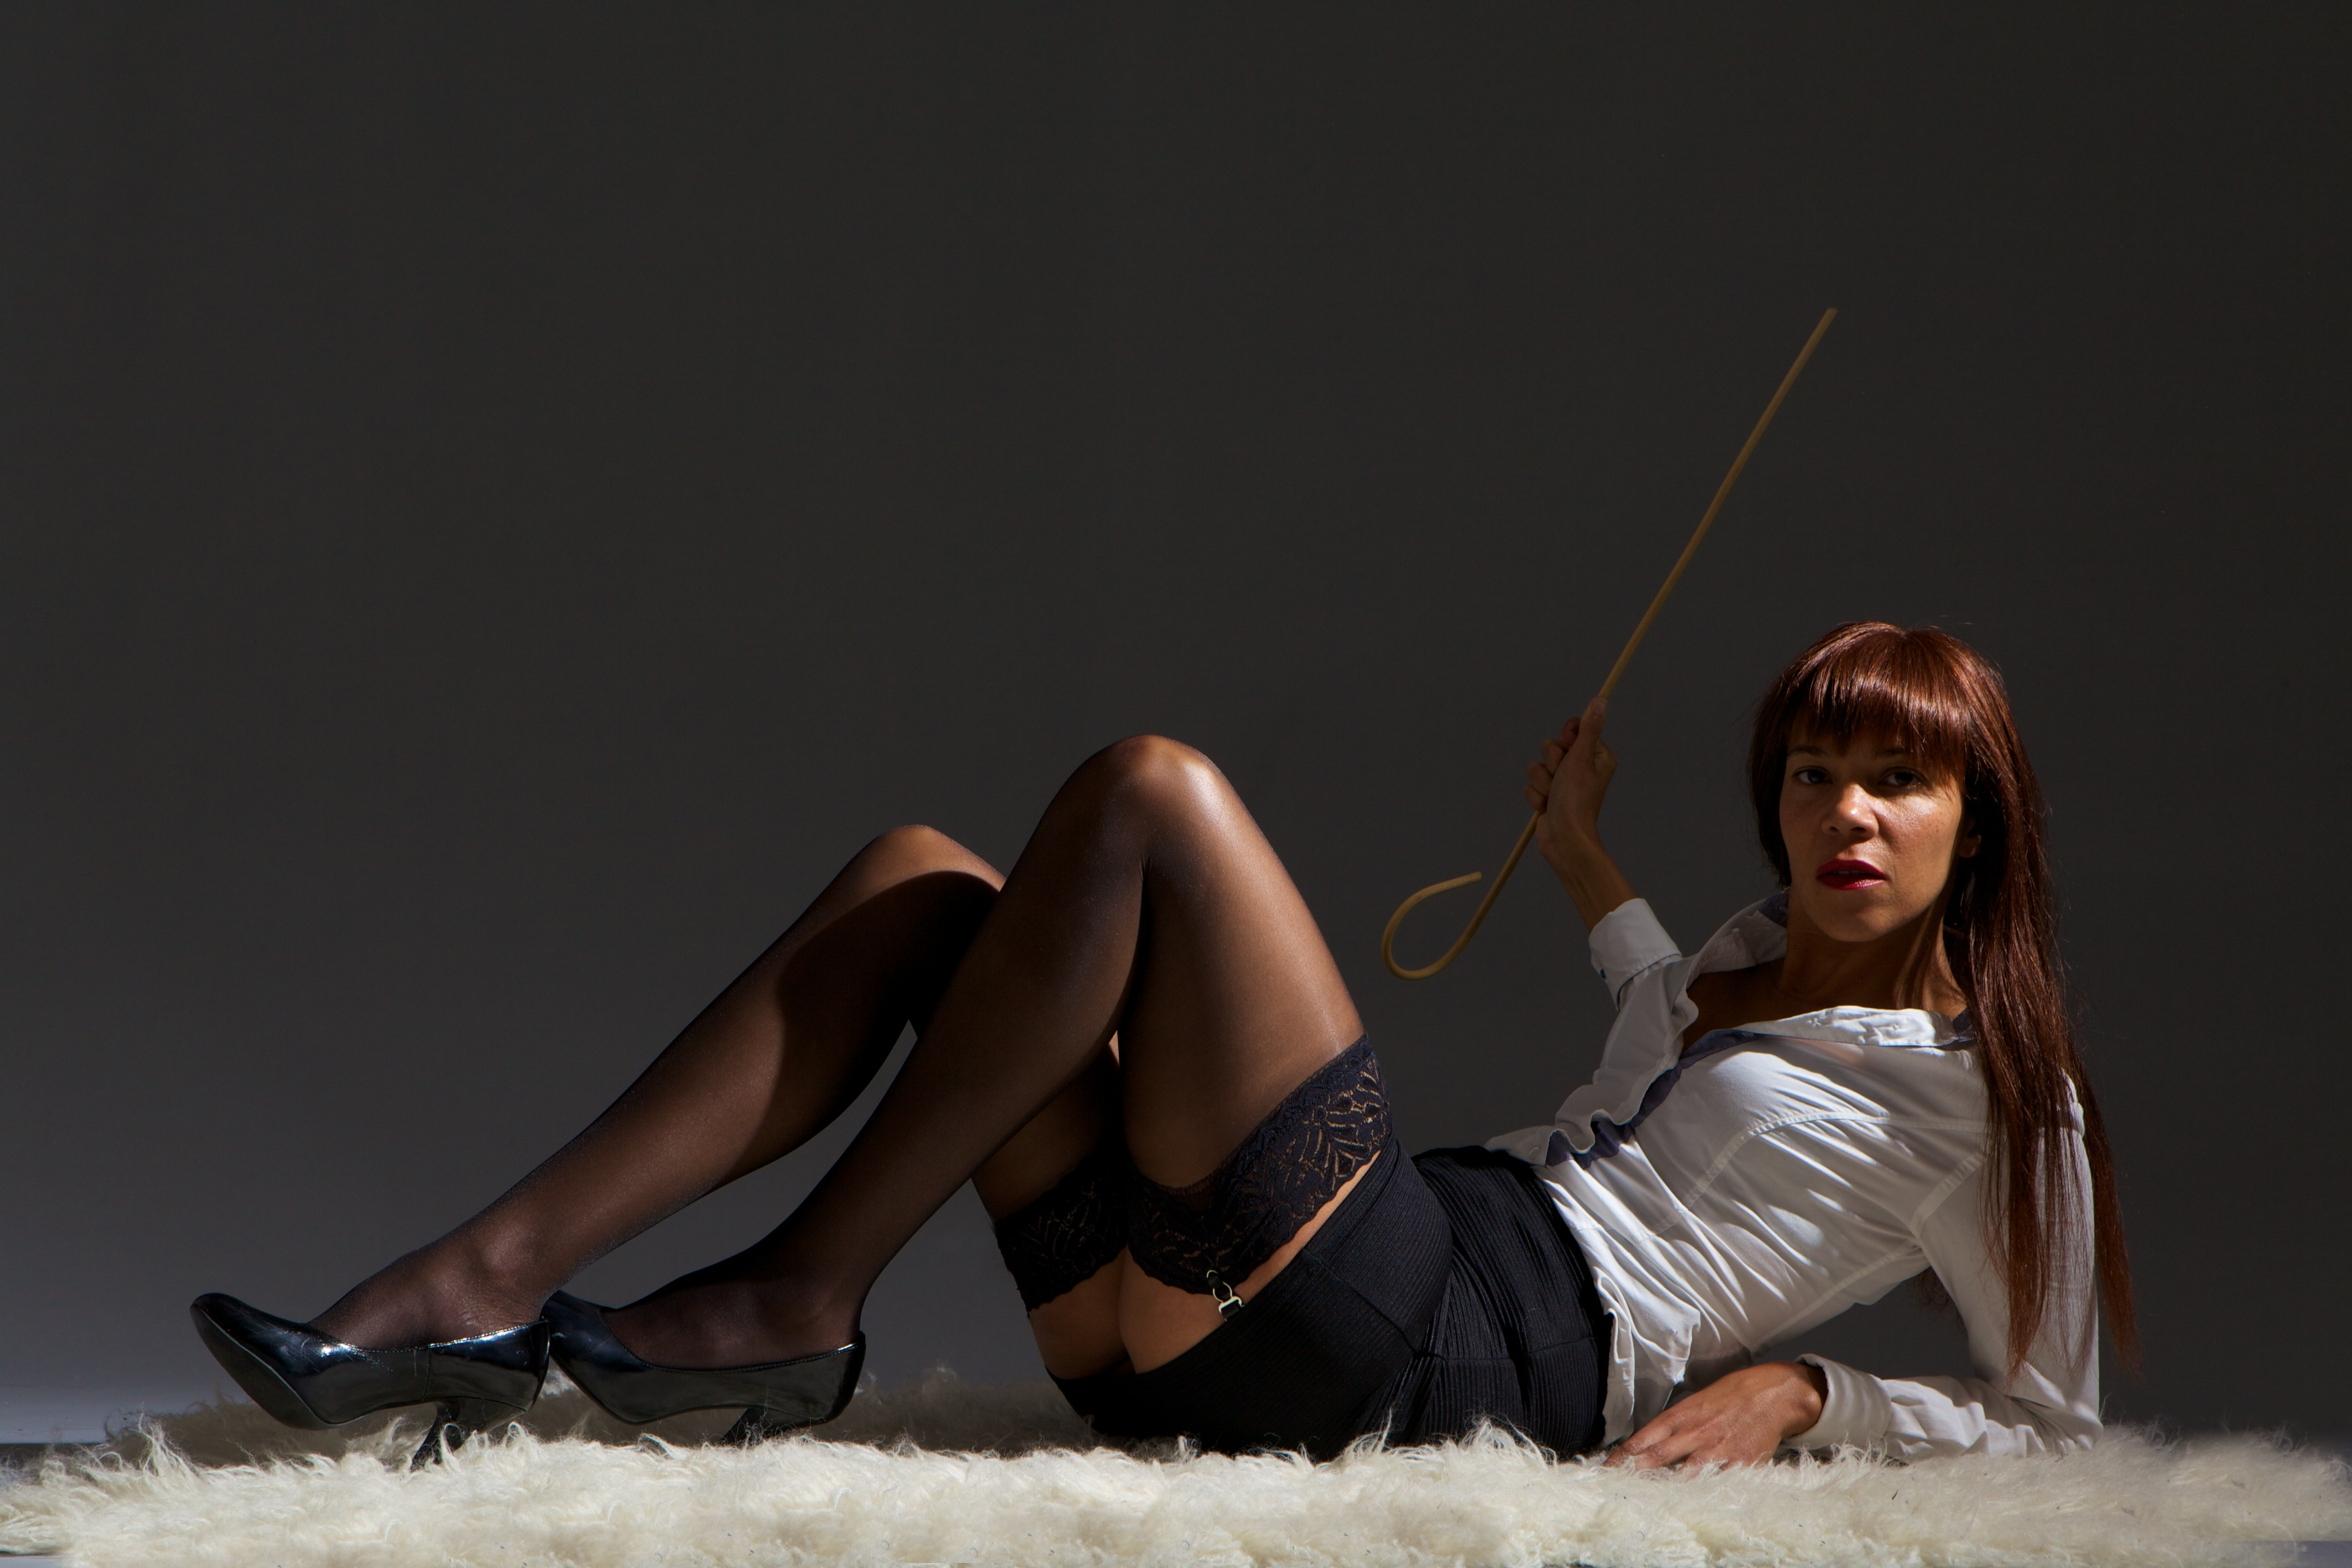 discipline-schoolboy-punishment-mistress-central-london-caning-spanking